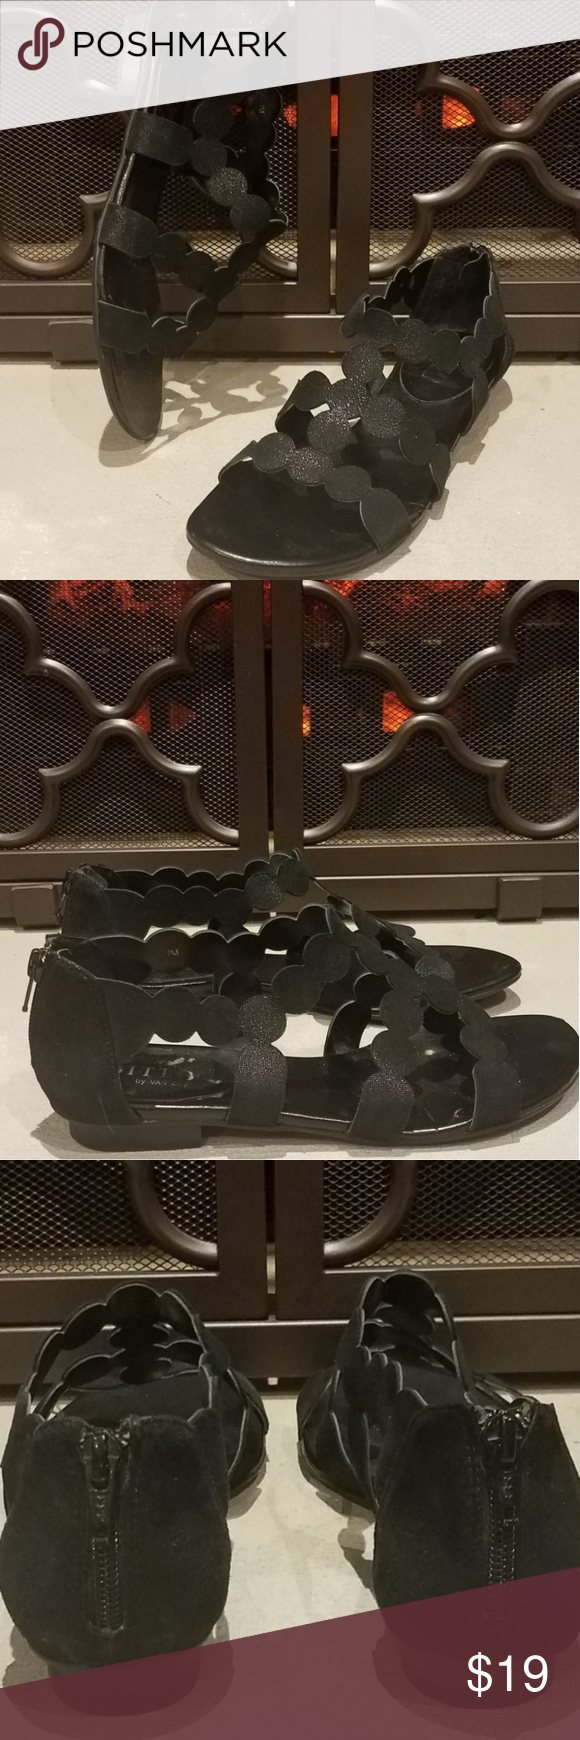 34128a54fd6 Ditto by Vaneli Sandals Great condition Ditto by Vaneli Sandals  stylish  and comfortable Ditto by